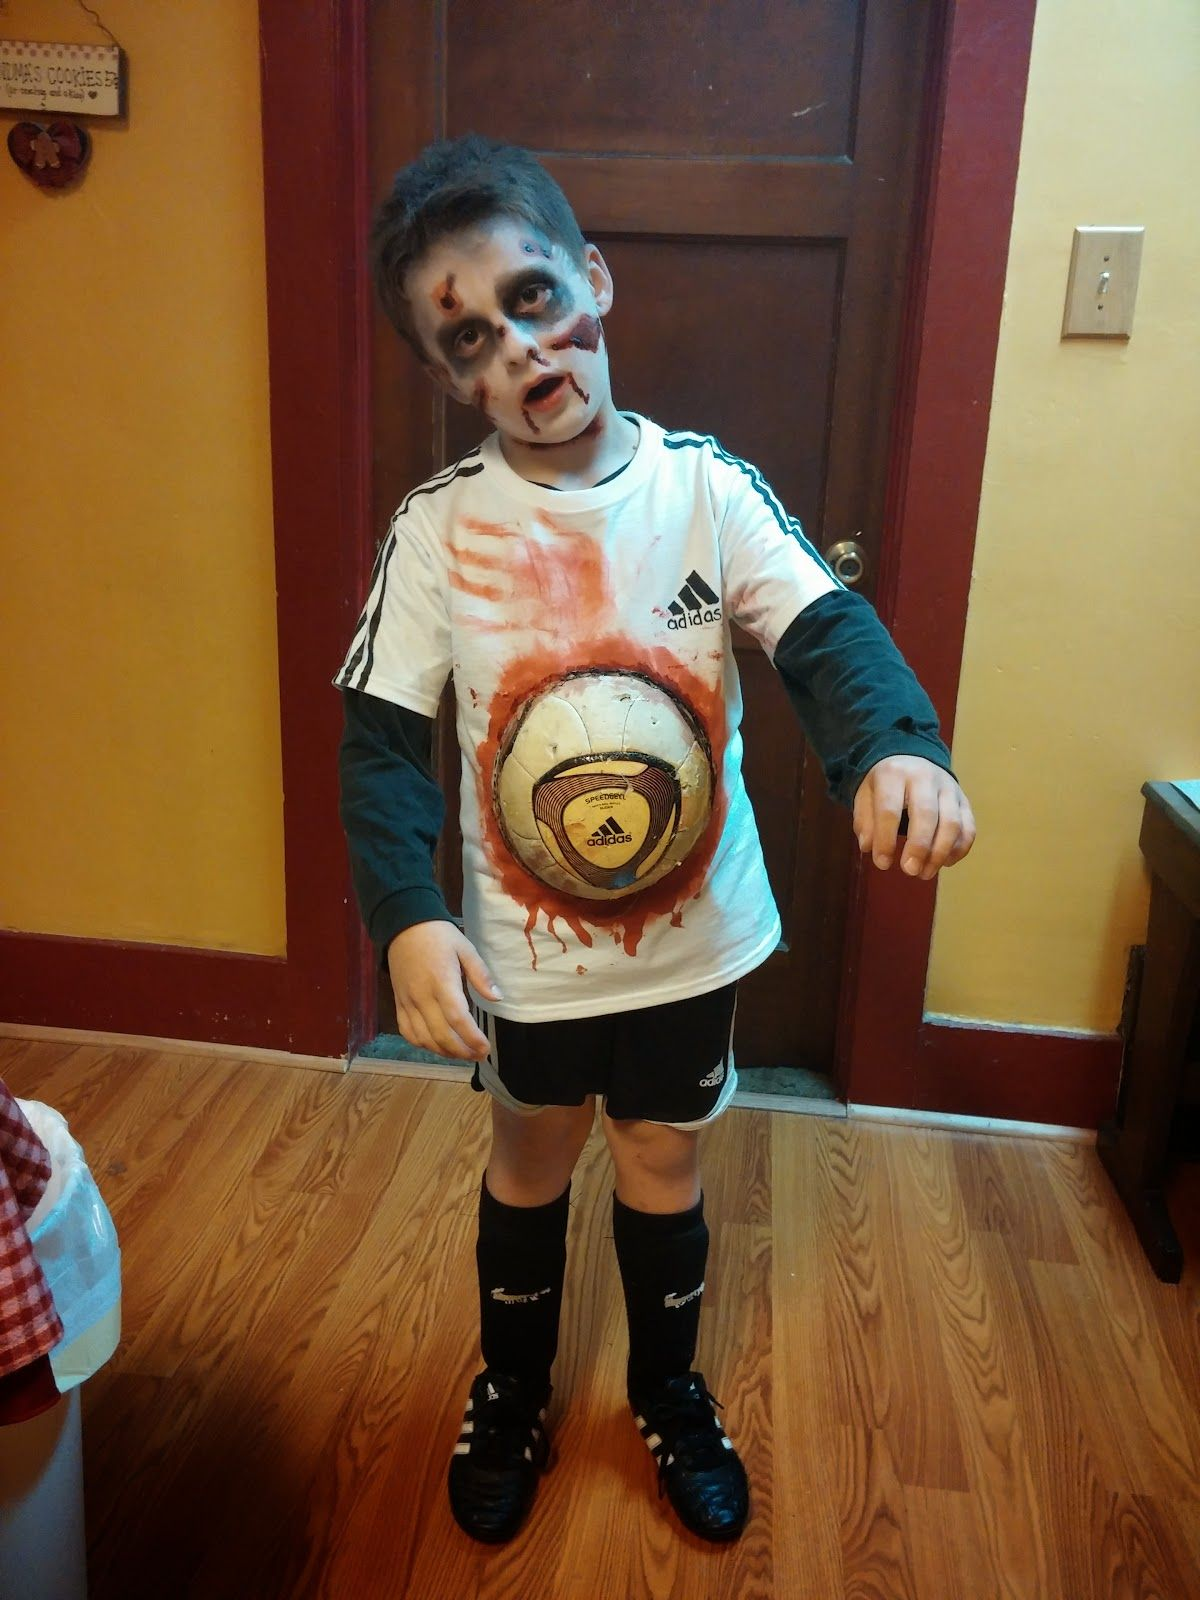 Livin Generic Zombie Soccer Play How To Halloween Costume Scary Halloween Costumes Boys Scary Halloween Costumes Scary Halloween Costumes Diy